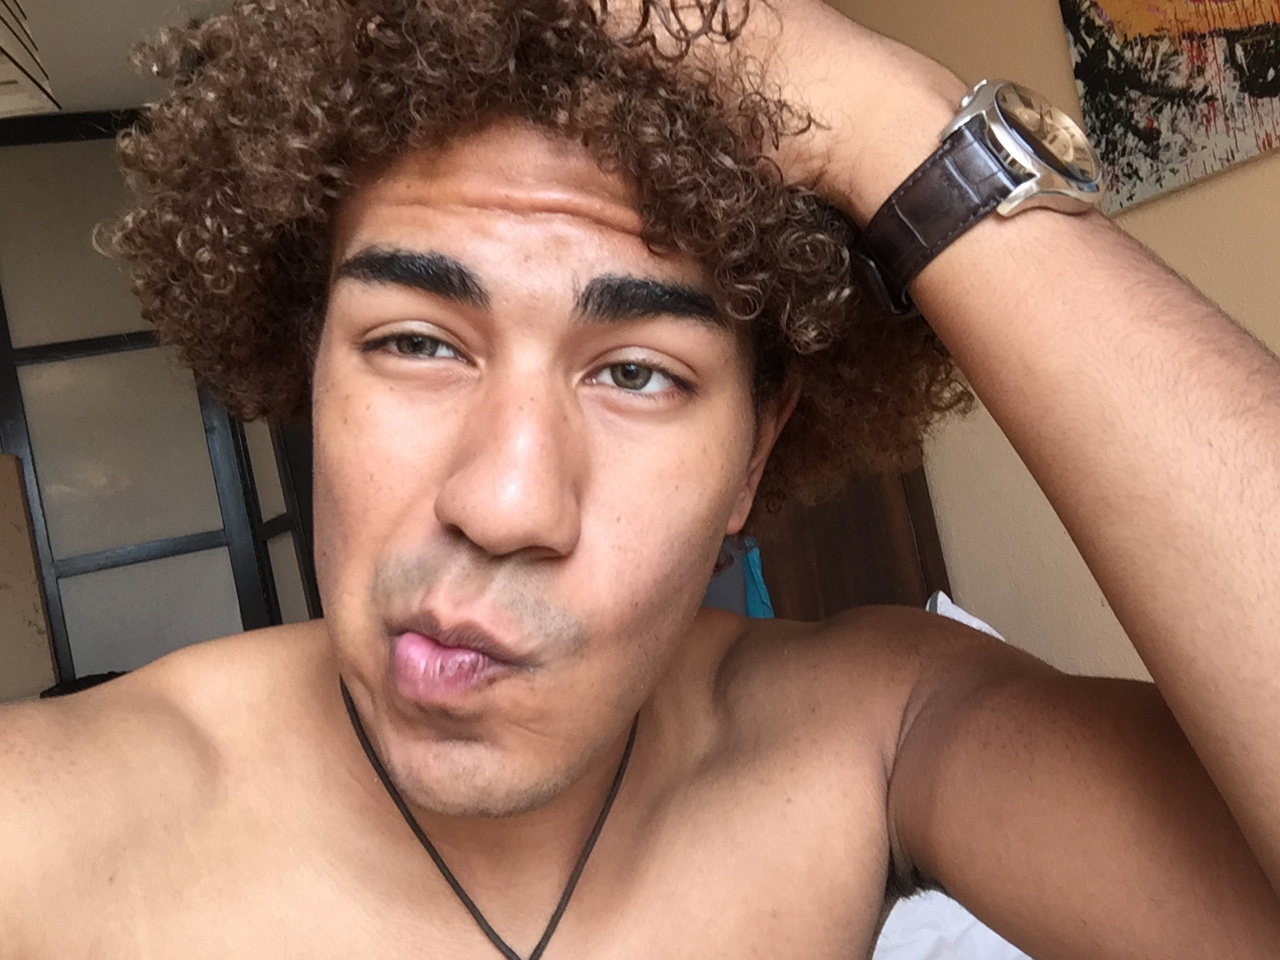 FEATURED MULTIRACIAL INDIVIDUAL: MEET ERIC MARCEL SCHIESSER via Swirl Nation Blog